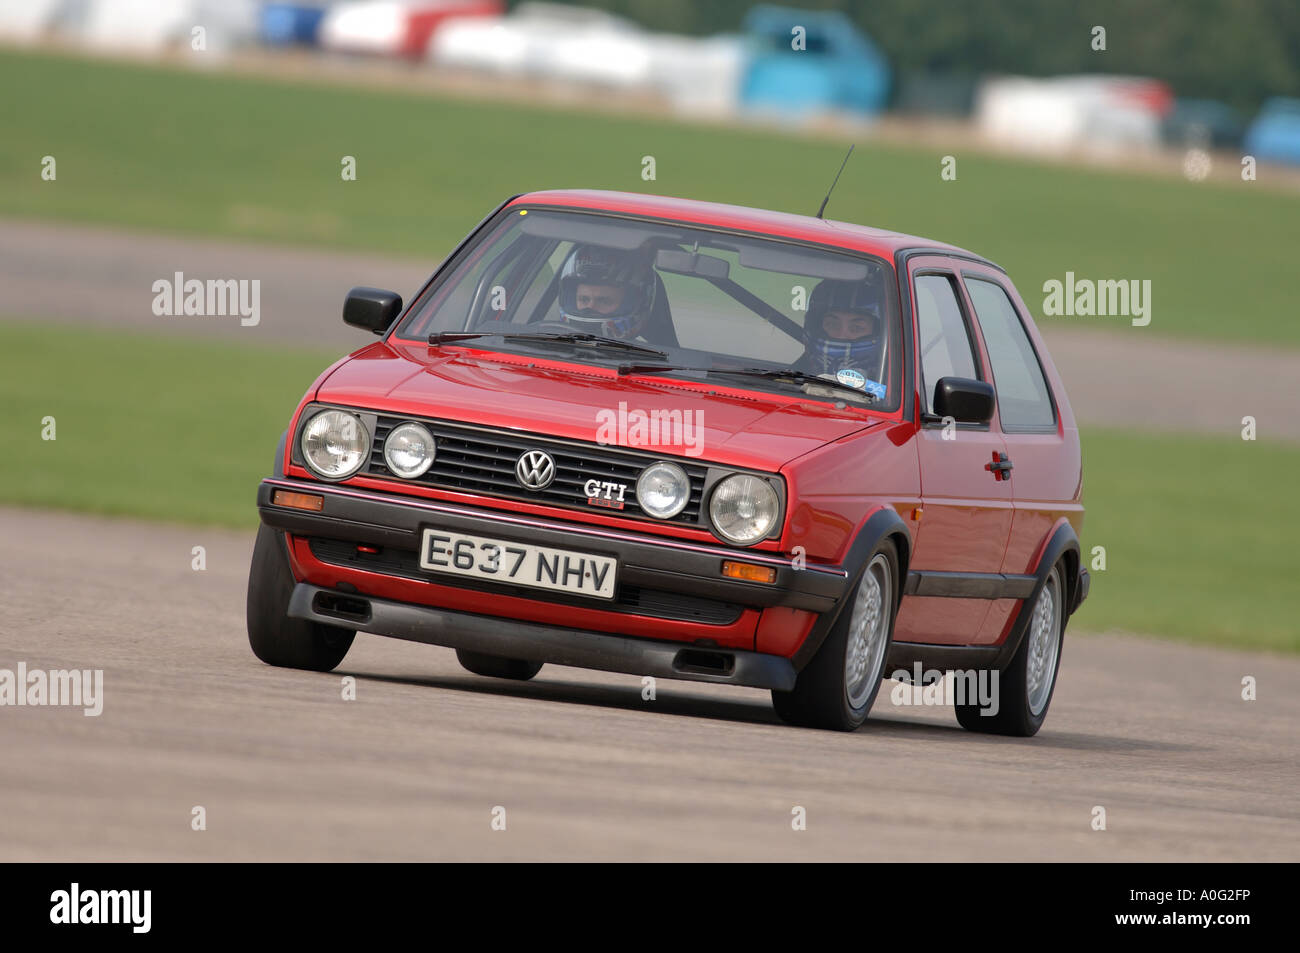 red mark 2 volkswagen golf gti 16v car racing on a circuit in the uk stock photo royalty free. Black Bedroom Furniture Sets. Home Design Ideas